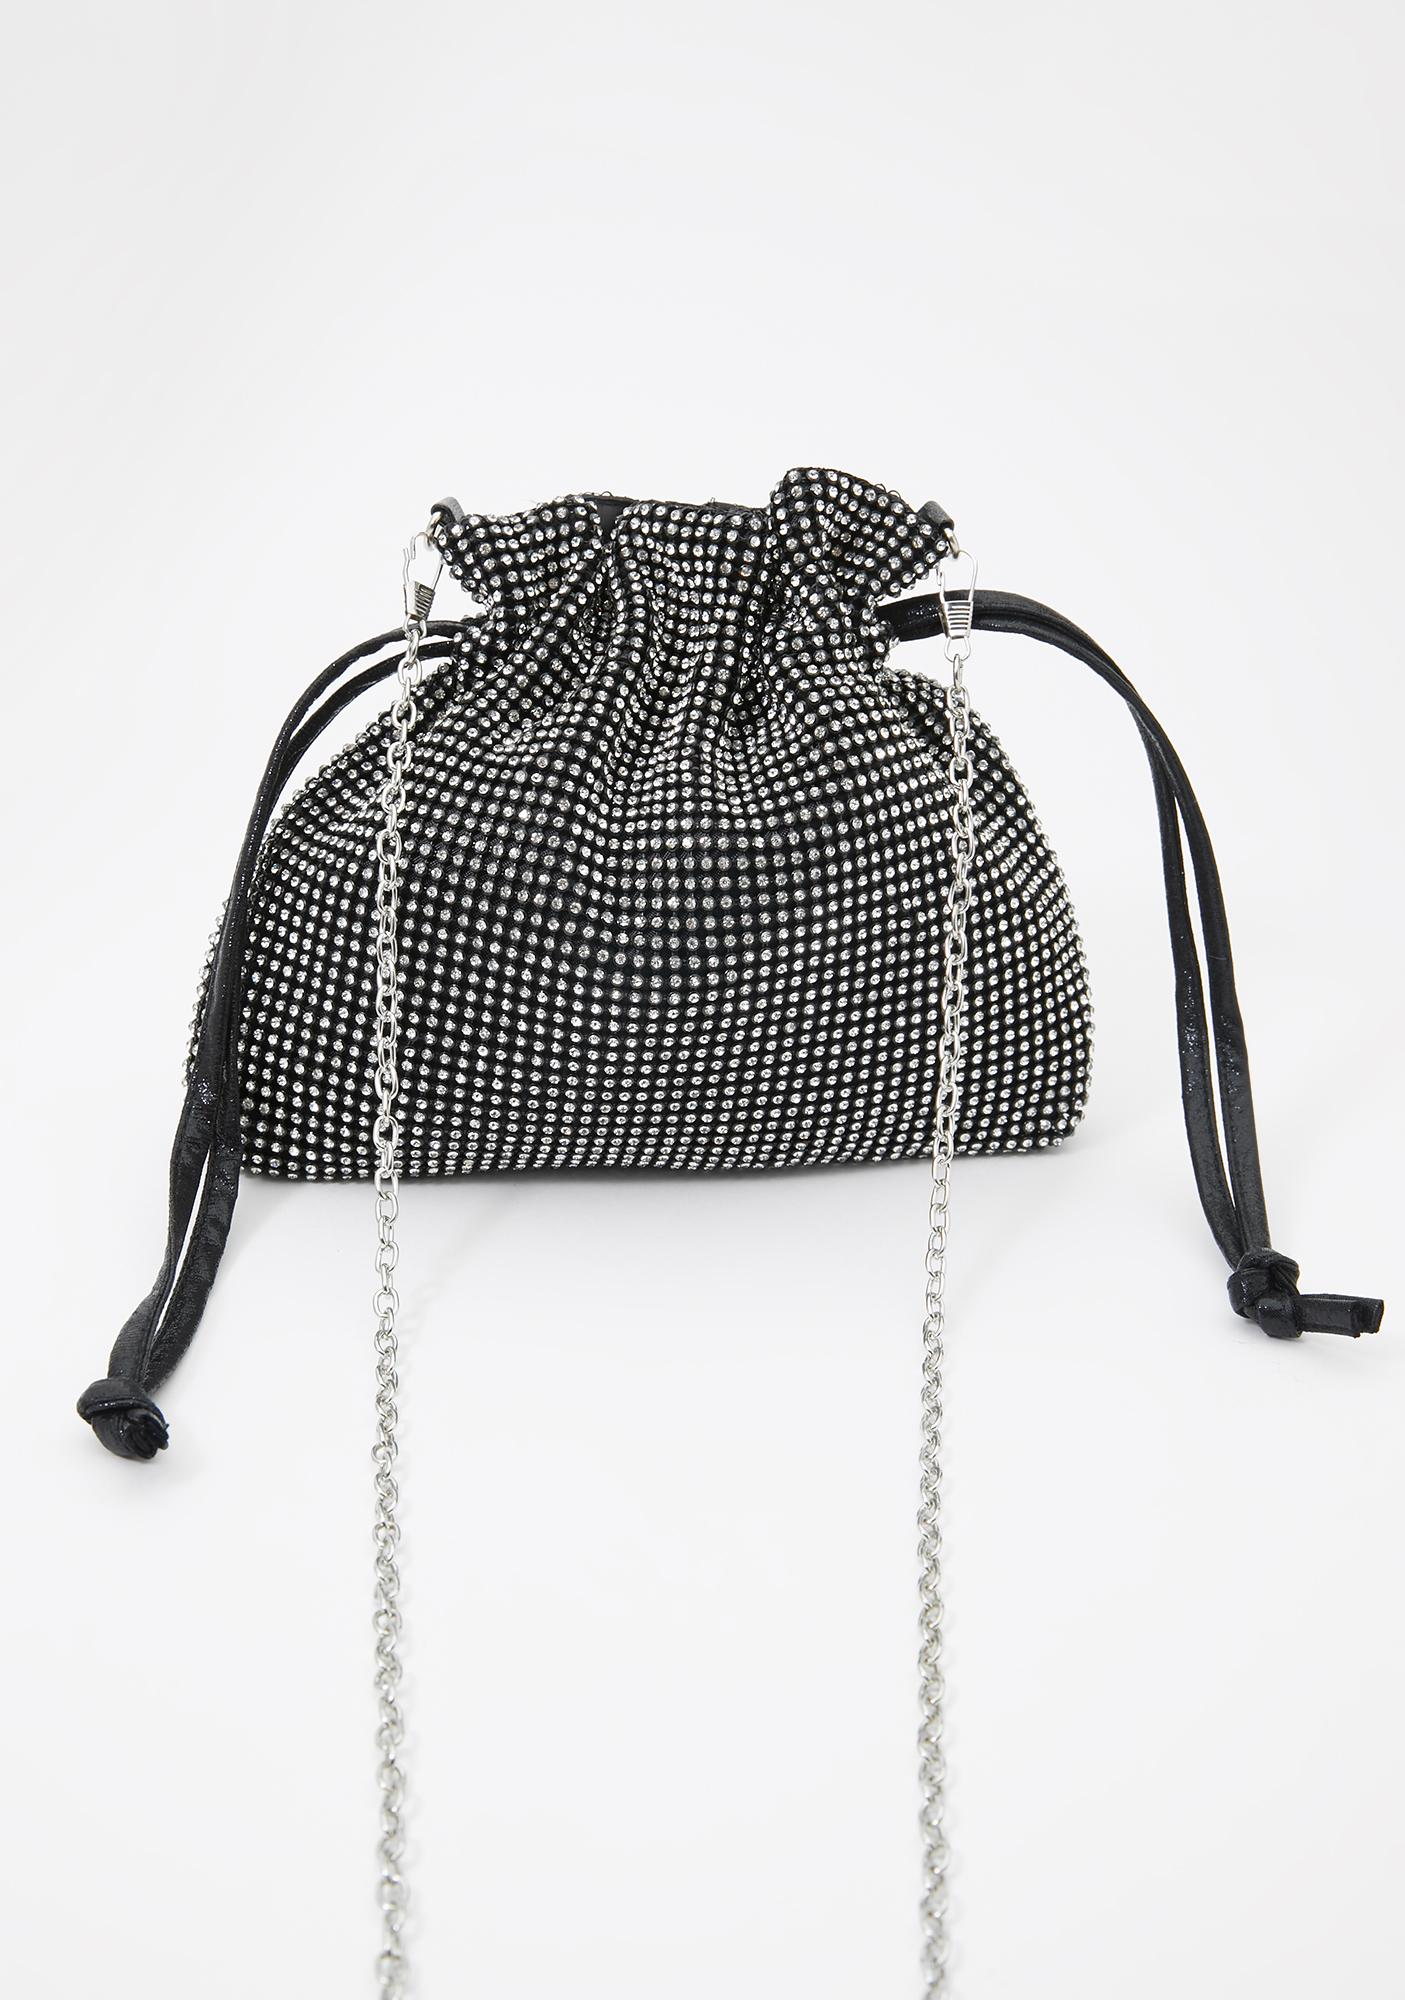 Legit Legend Drawstring Purse